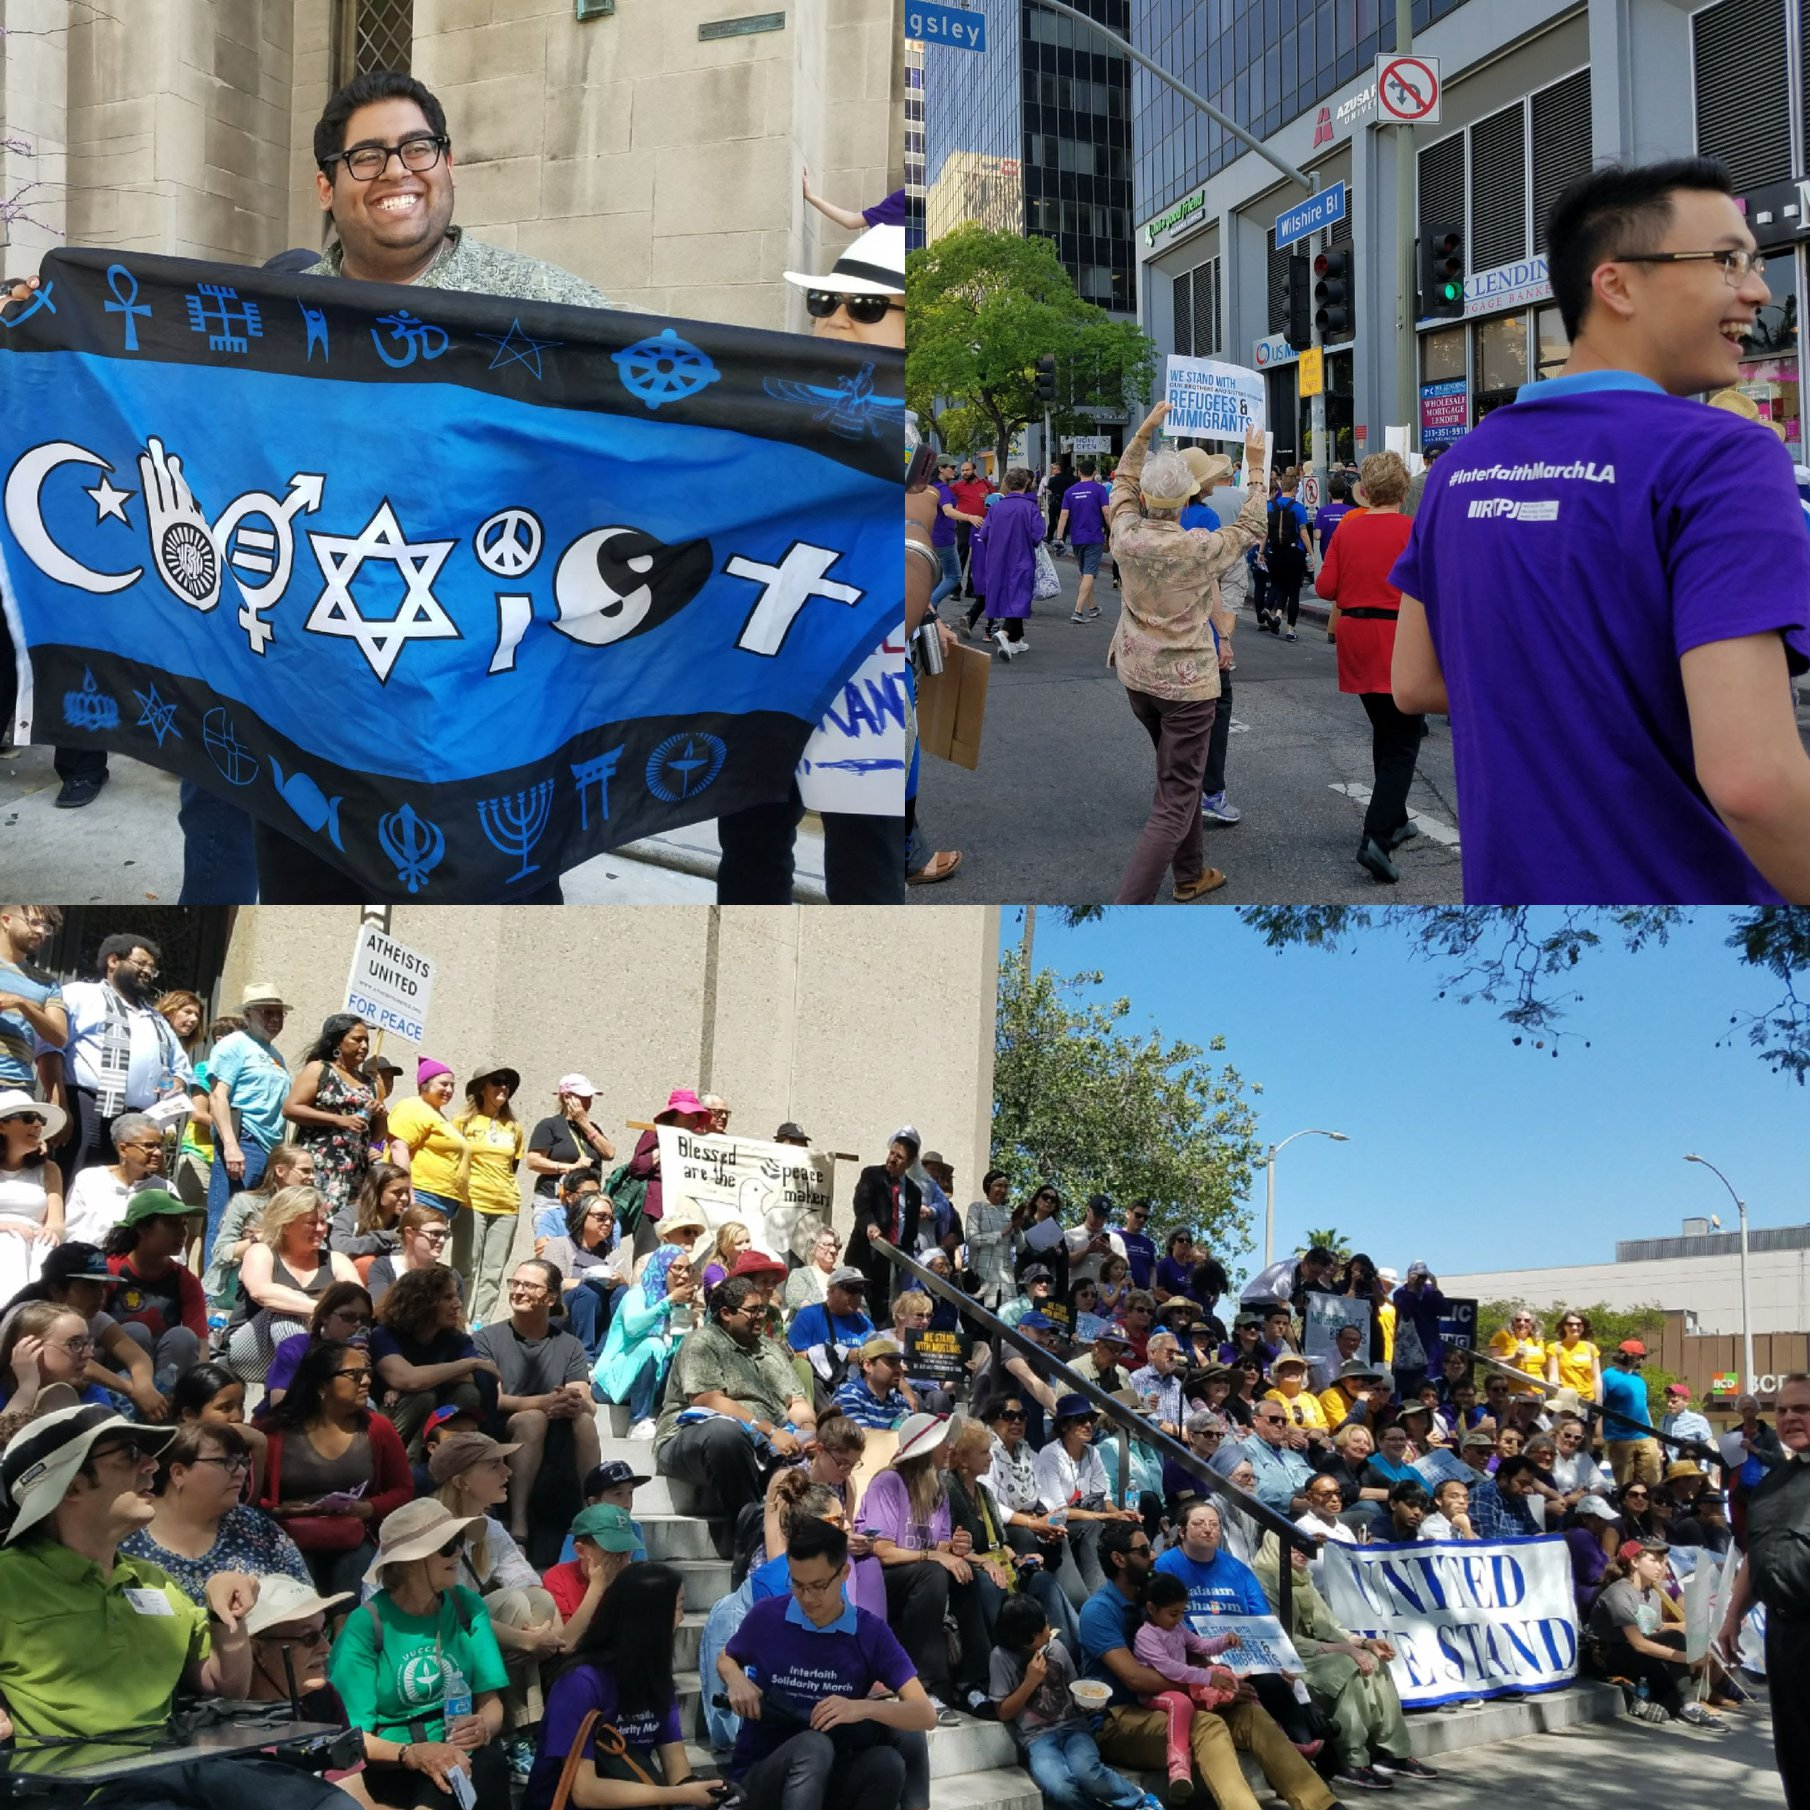 Interfaith March collage